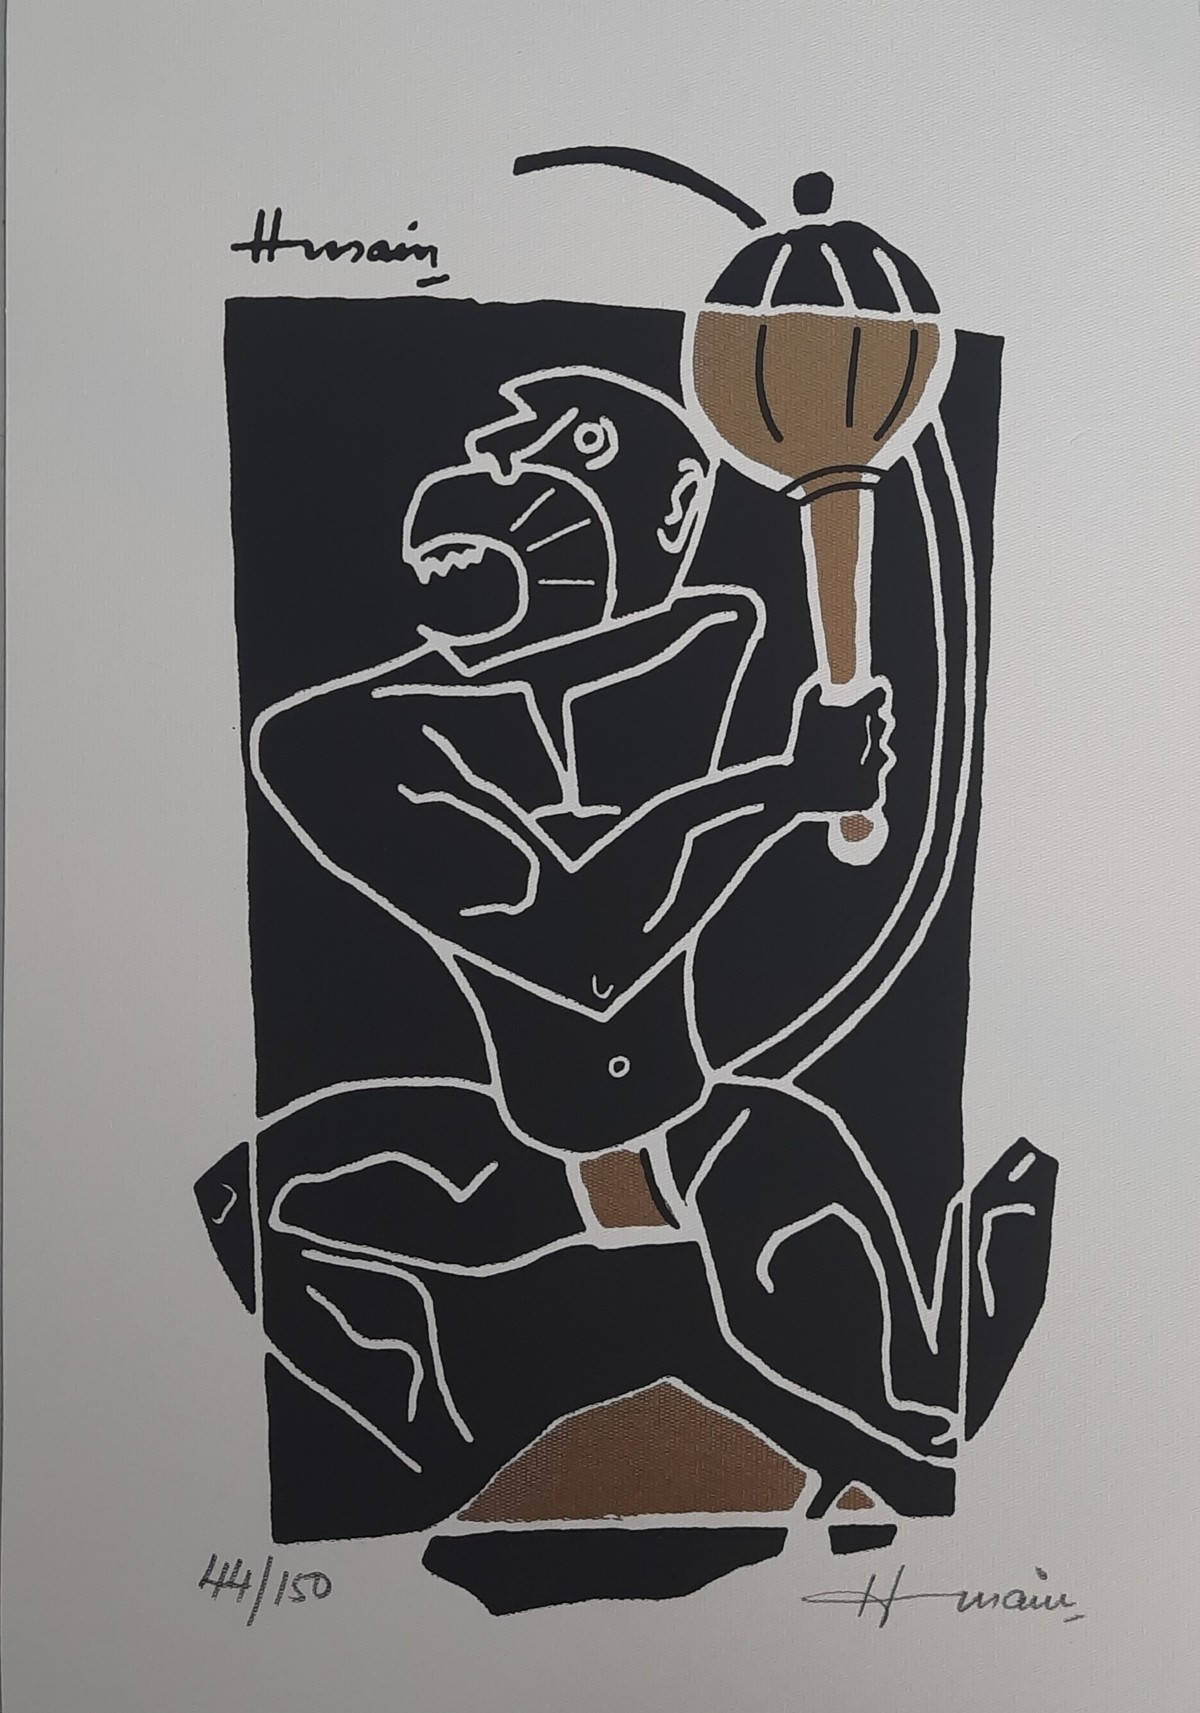 Bajrangbali by M F Husain, Expressionism Serigraph, Serigraph on Paper, Cloudy color